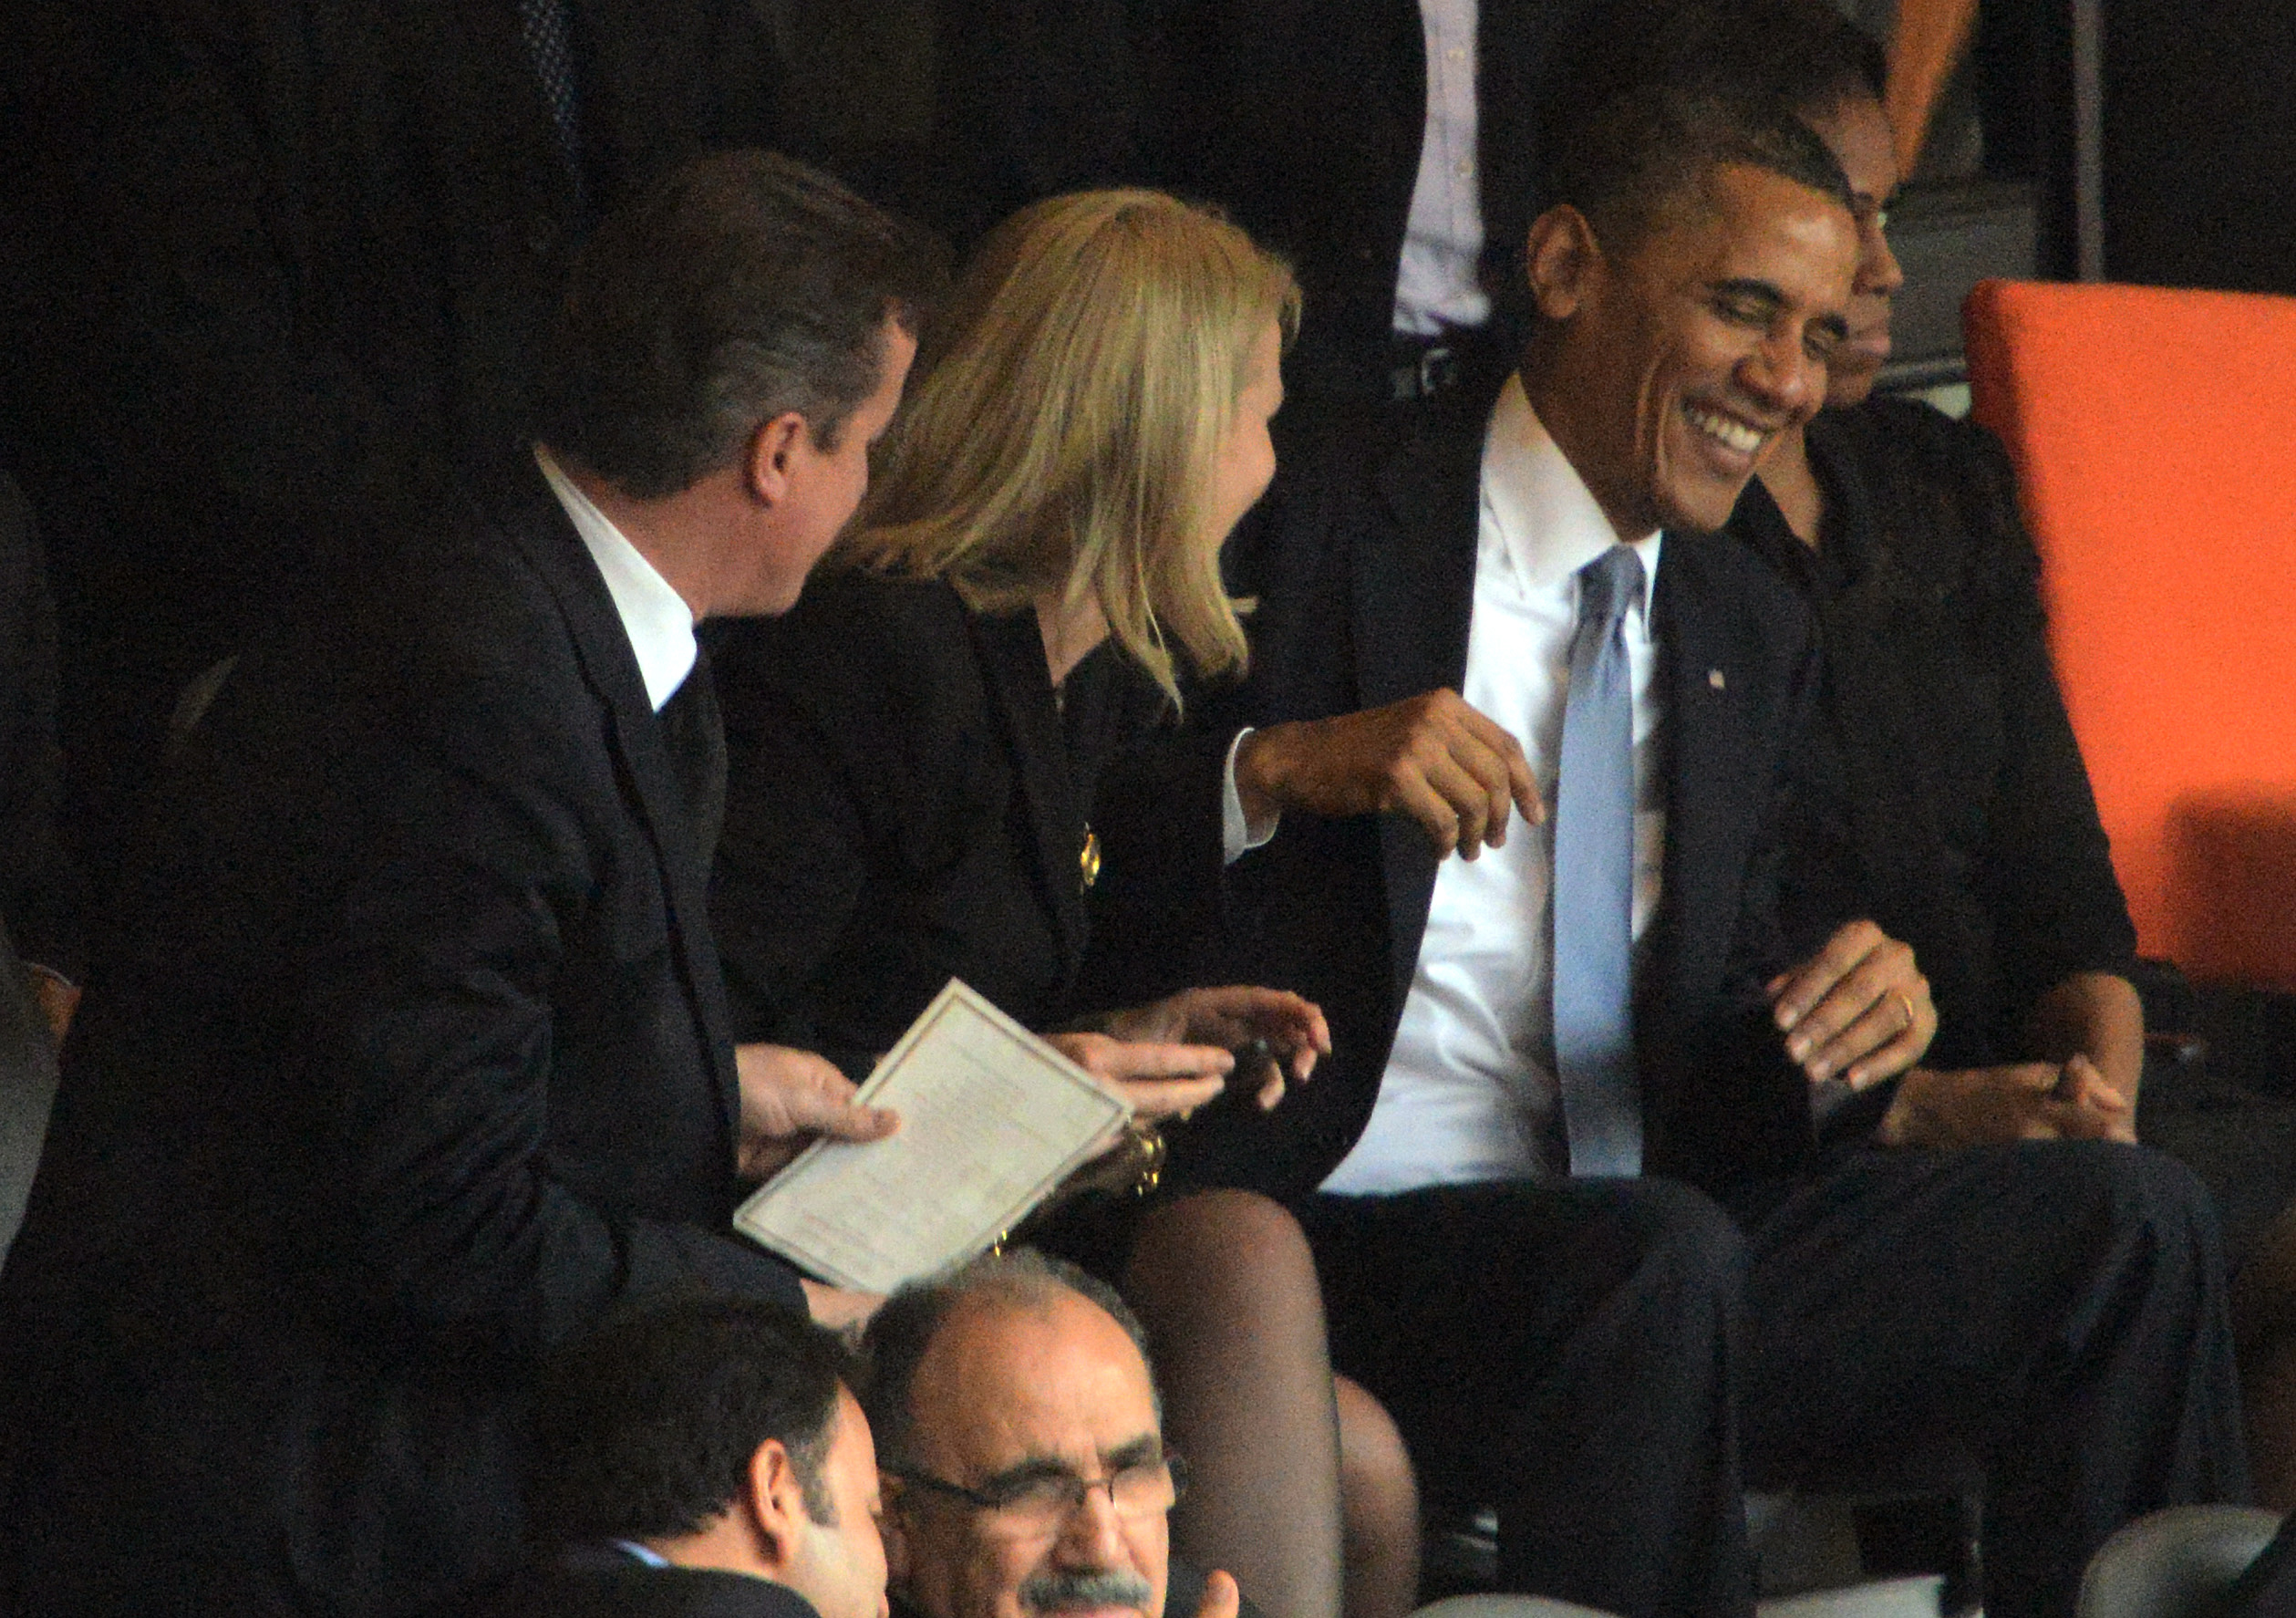 US President Barack Obama (R) smiles before posing for a picture with British Prime Minister David Cameron and Denmark's Prime Minister Helle Thorning Schmidt (C) during the memorial service of South African former president Nelson Mandela at the FNB Stadium (Soccer City) in Johannesburg on December 10, 2013. Mandela, the revered icon of the anti-apartheid struggle in South Africa and one of the towering political figures of the 20th century, died in Johannesburg on December 5 at age 95. AFP PHOTO / ROBERTO SCHMIDT        (Photo credit should read ROBERTO SCHMIDT/AFP/Getty Images)